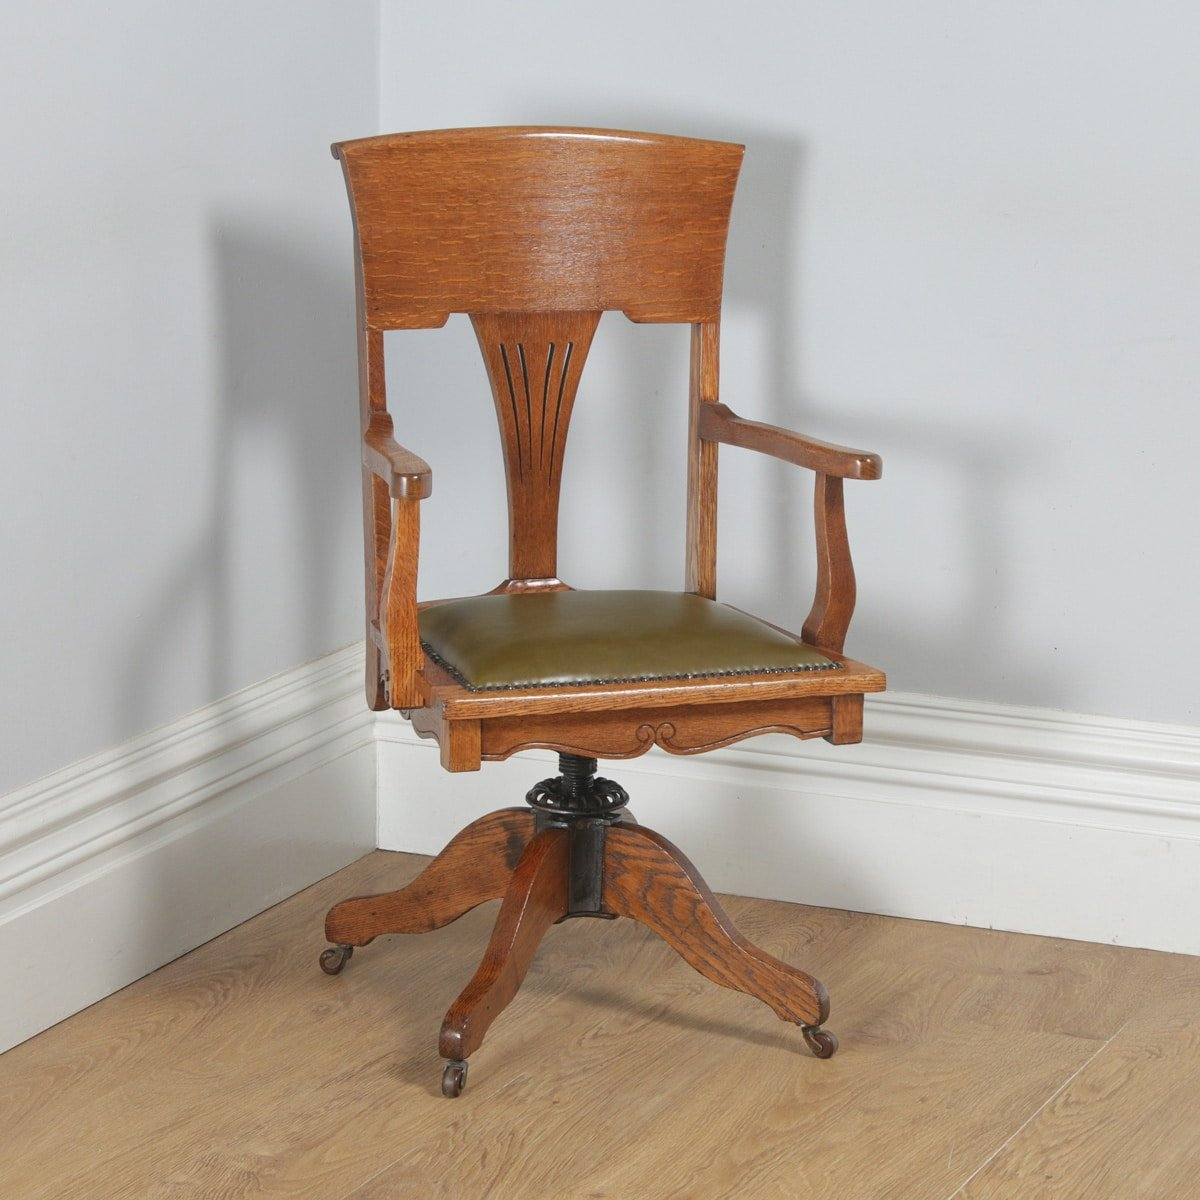 revolving chair for kitchen no plumbing pedicure chairs antique american art nouveau oak and leather